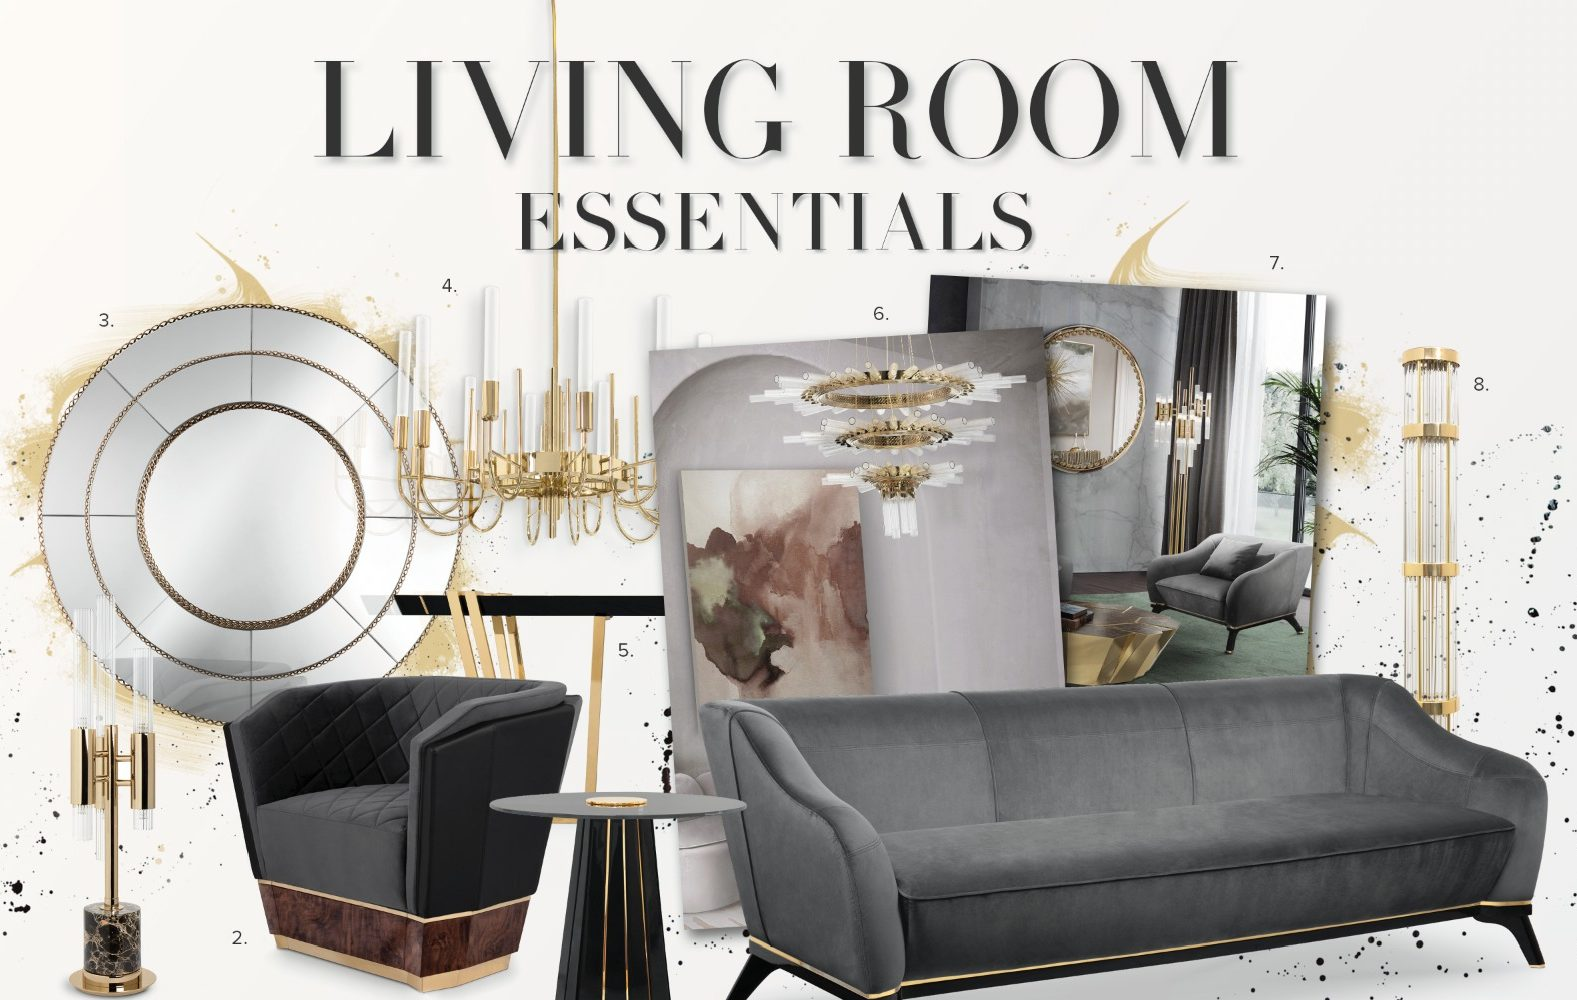 Living Room Essentials- The Mandatory in Craftmanship Products